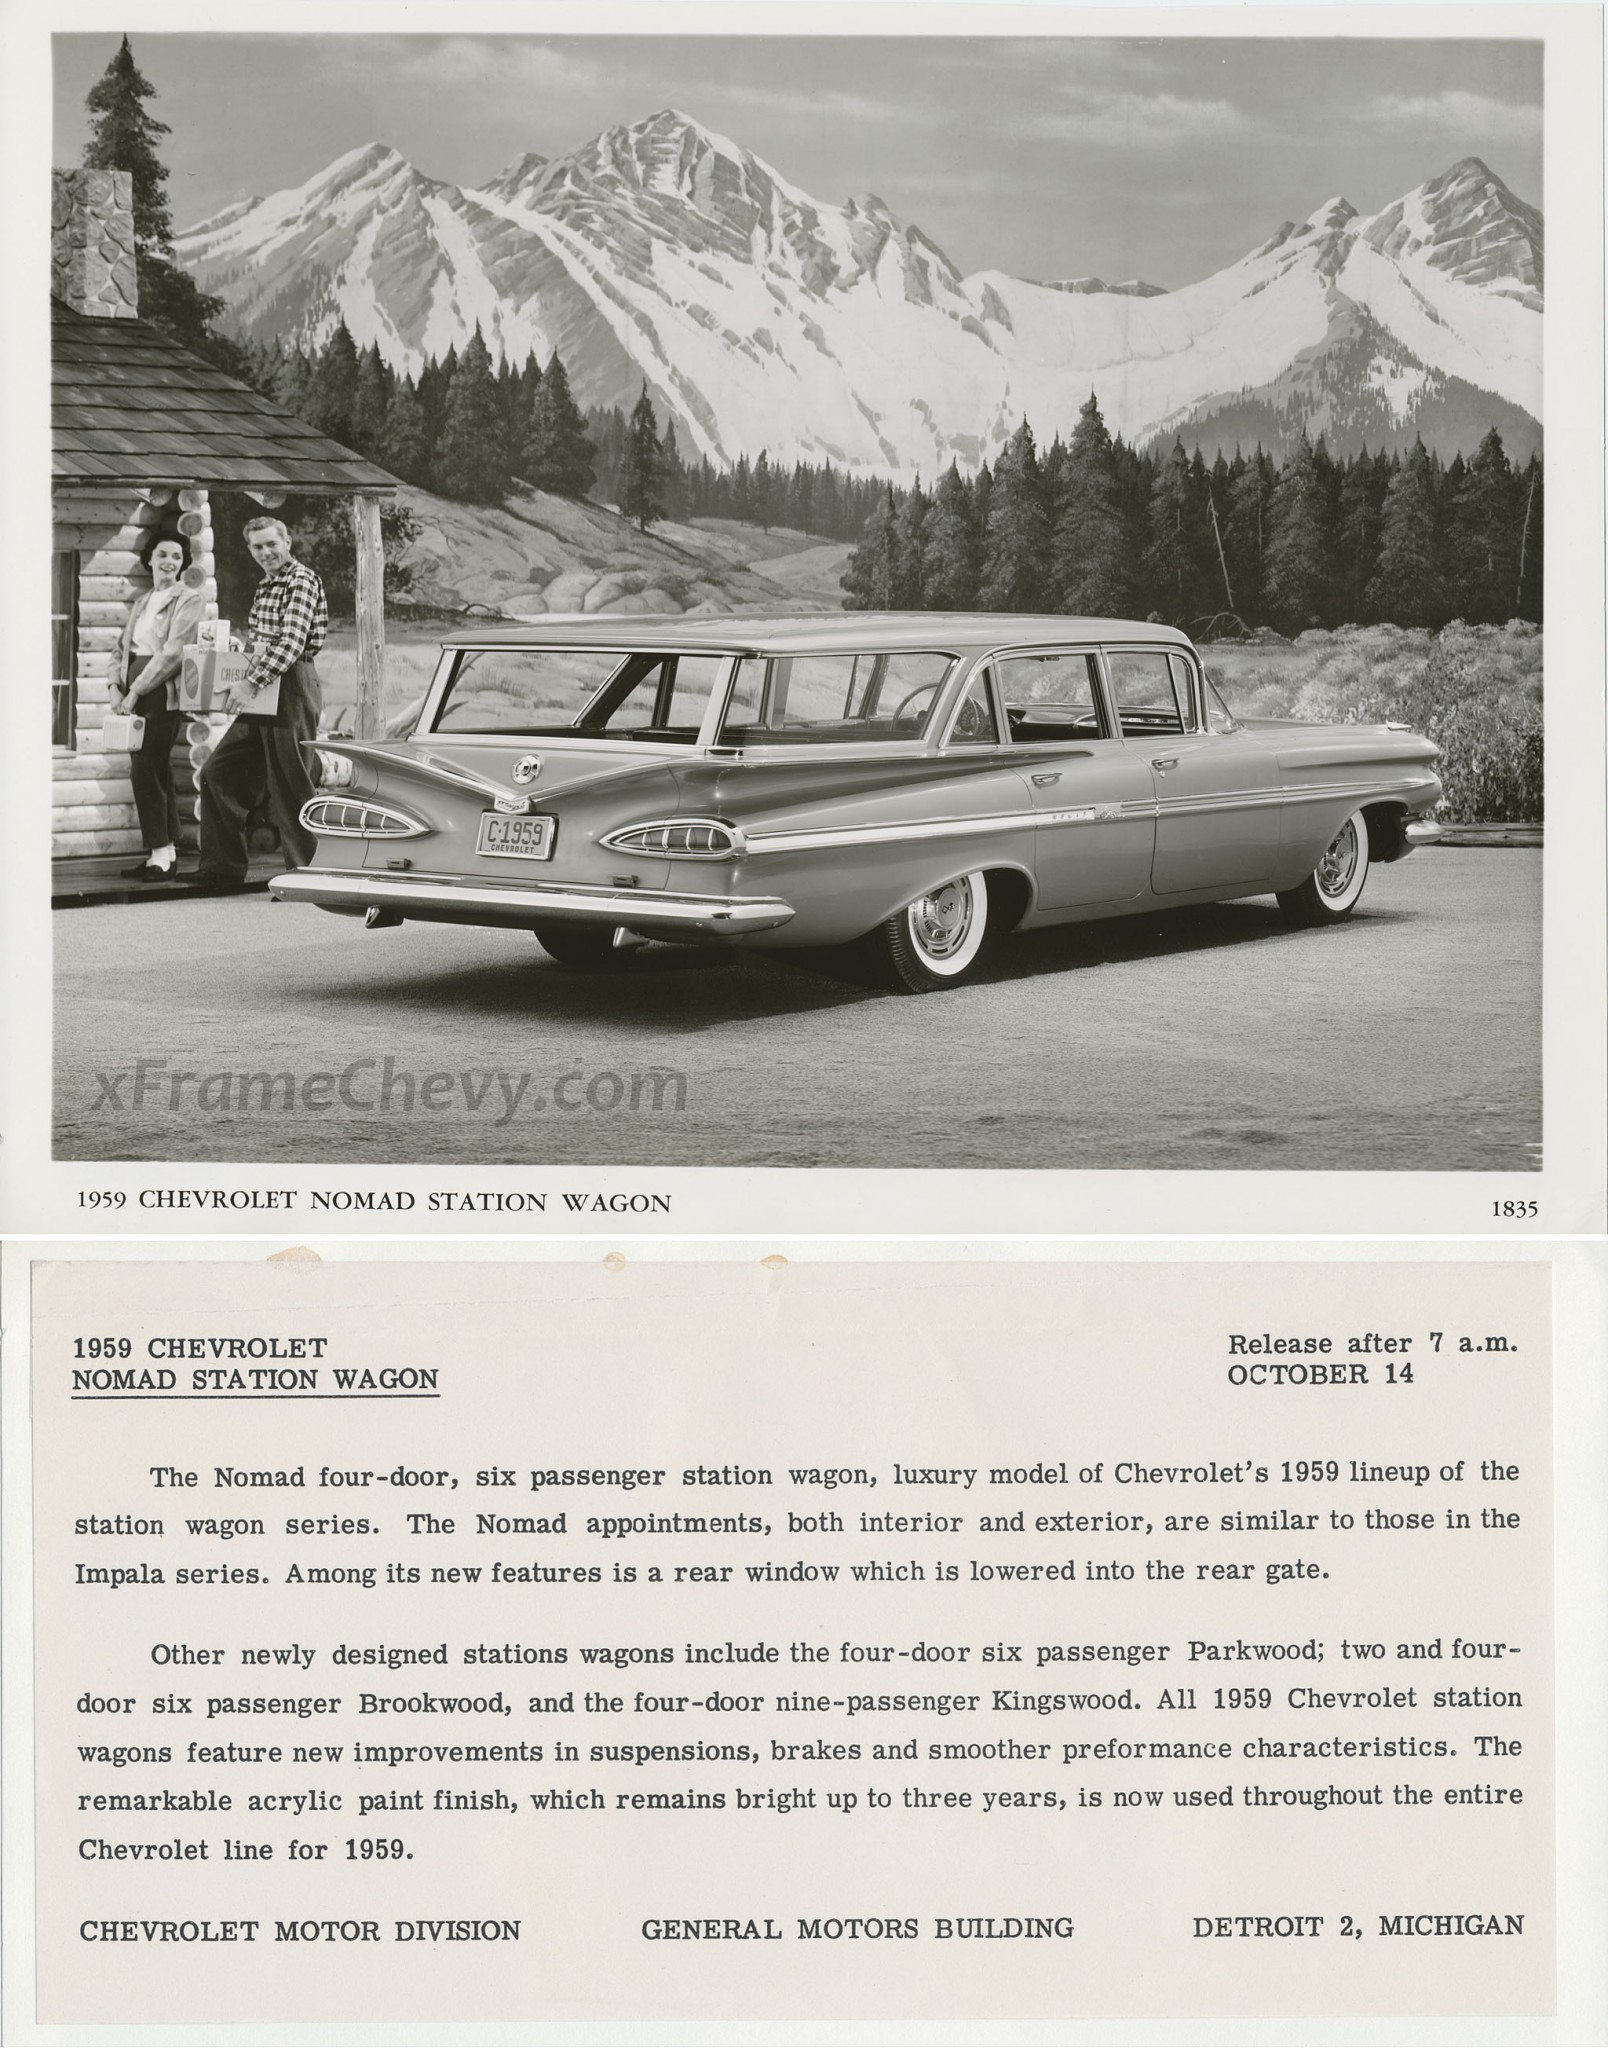 photo - GM Photographic - 1959 Nomad Wagon